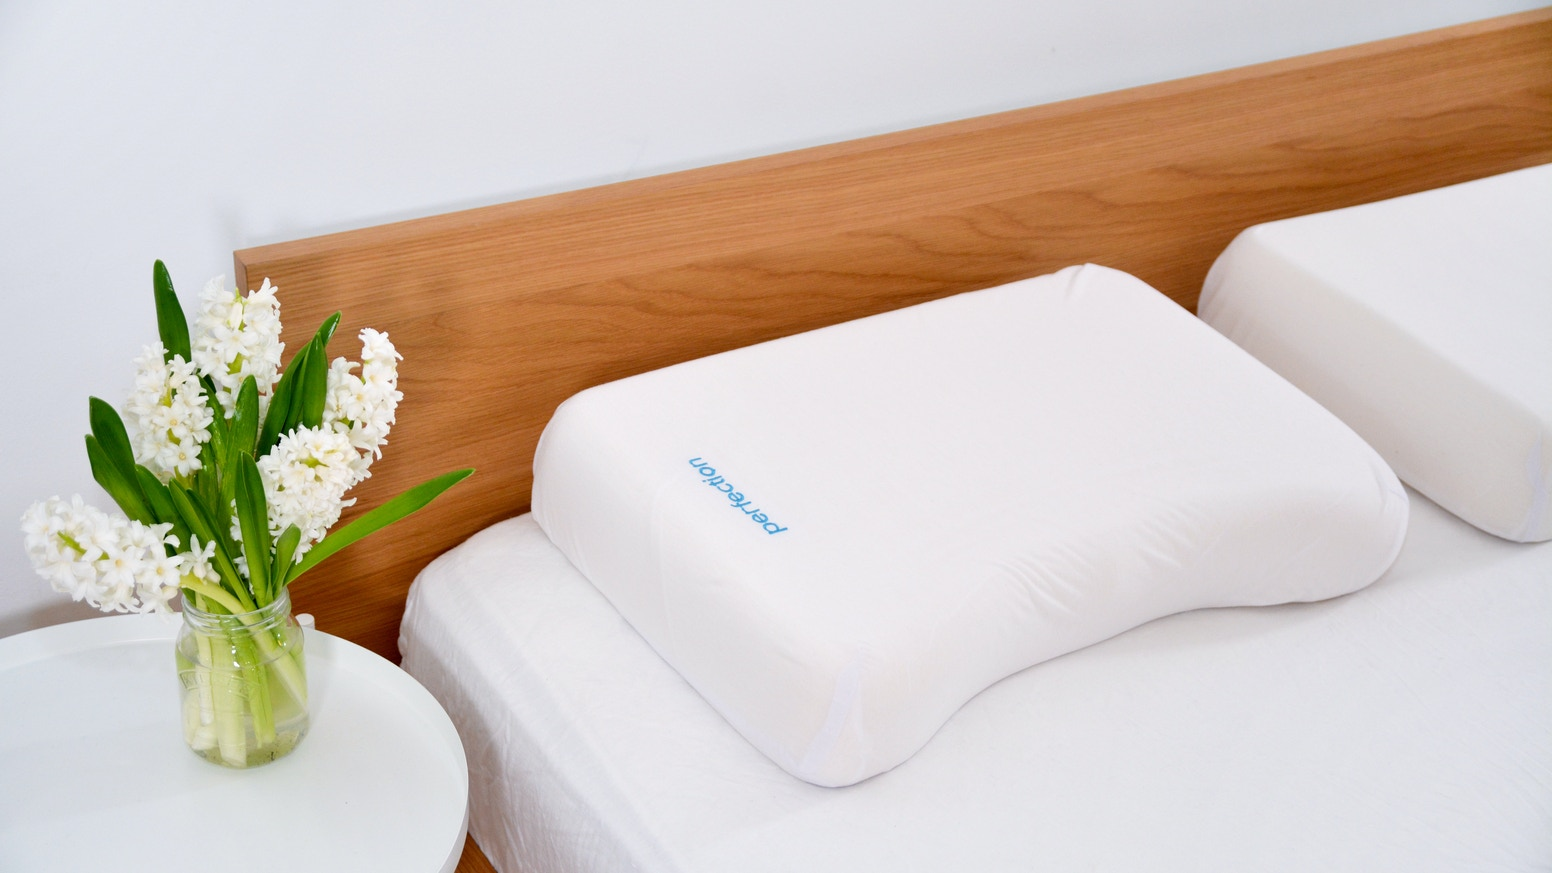 Designed with a revolutionary support structure, Perfection helps keep your head, neck, shoulders, and spine aligned while you sleep.